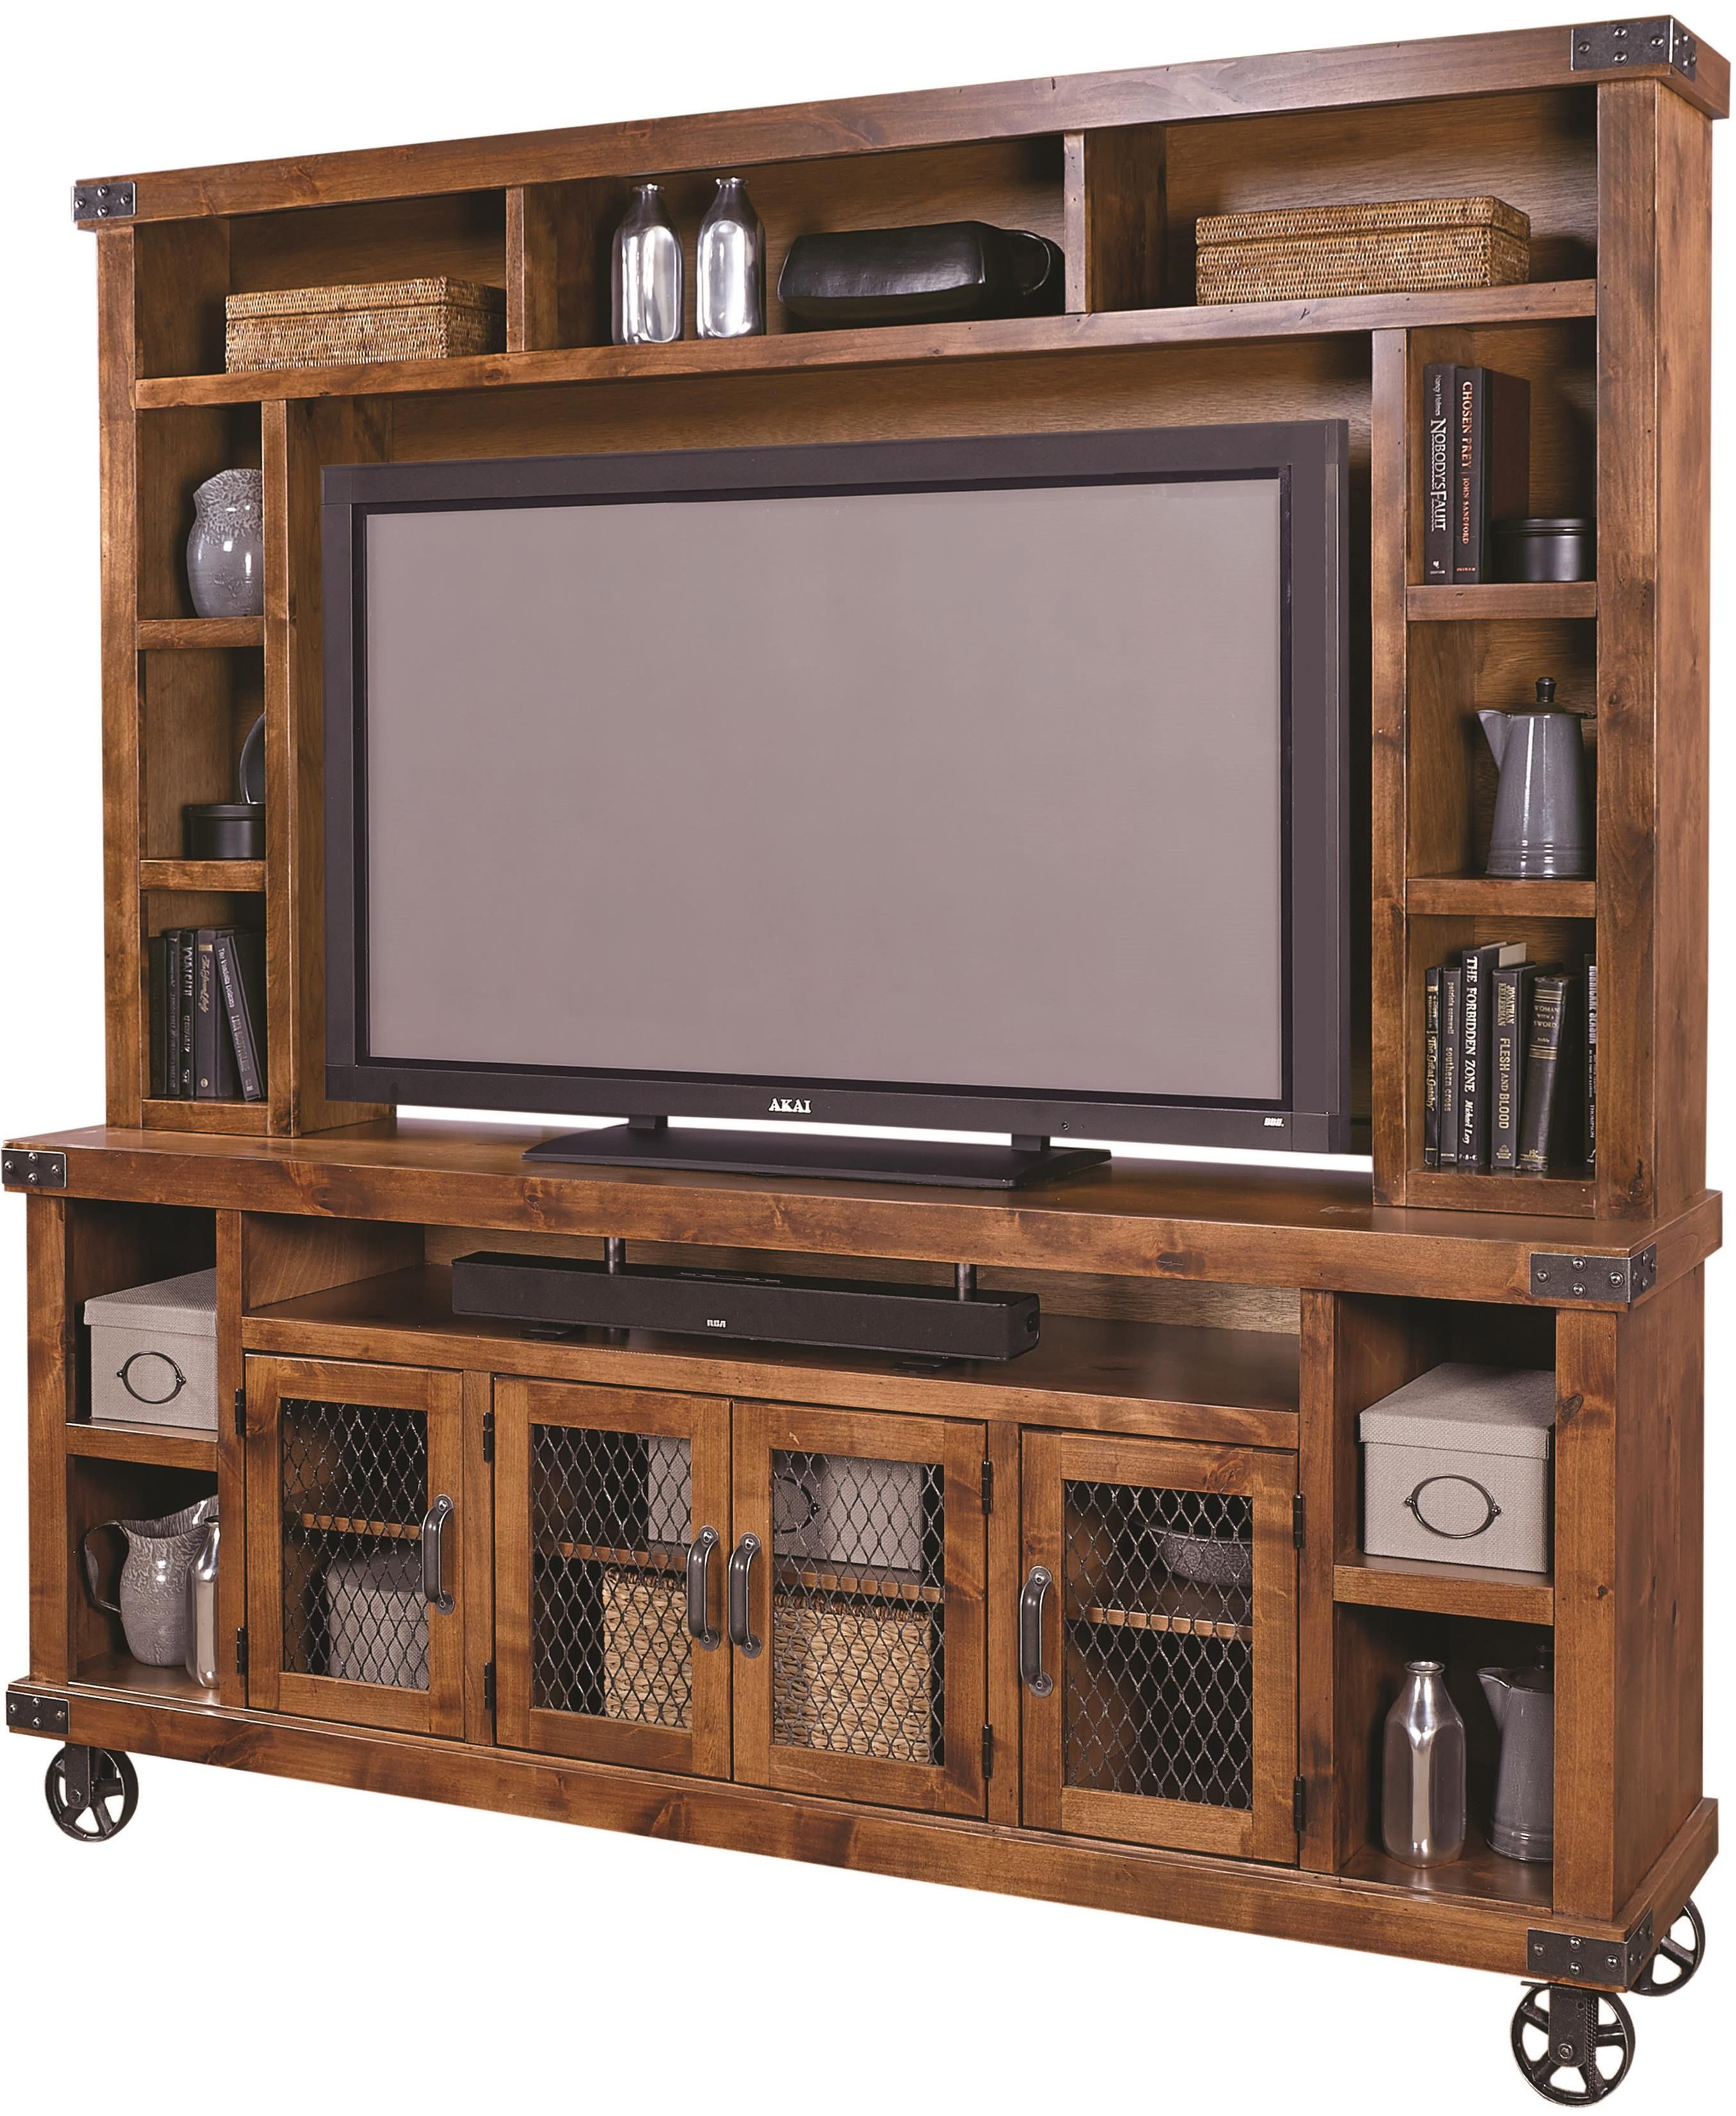 trinell brown entertainment wall on industrial 84 entertainment unit with soundbar compartment by aspenhome at darvin furniture home entertainment furniture entertainment unit entertainment wall industrial 84 entertainment unit with